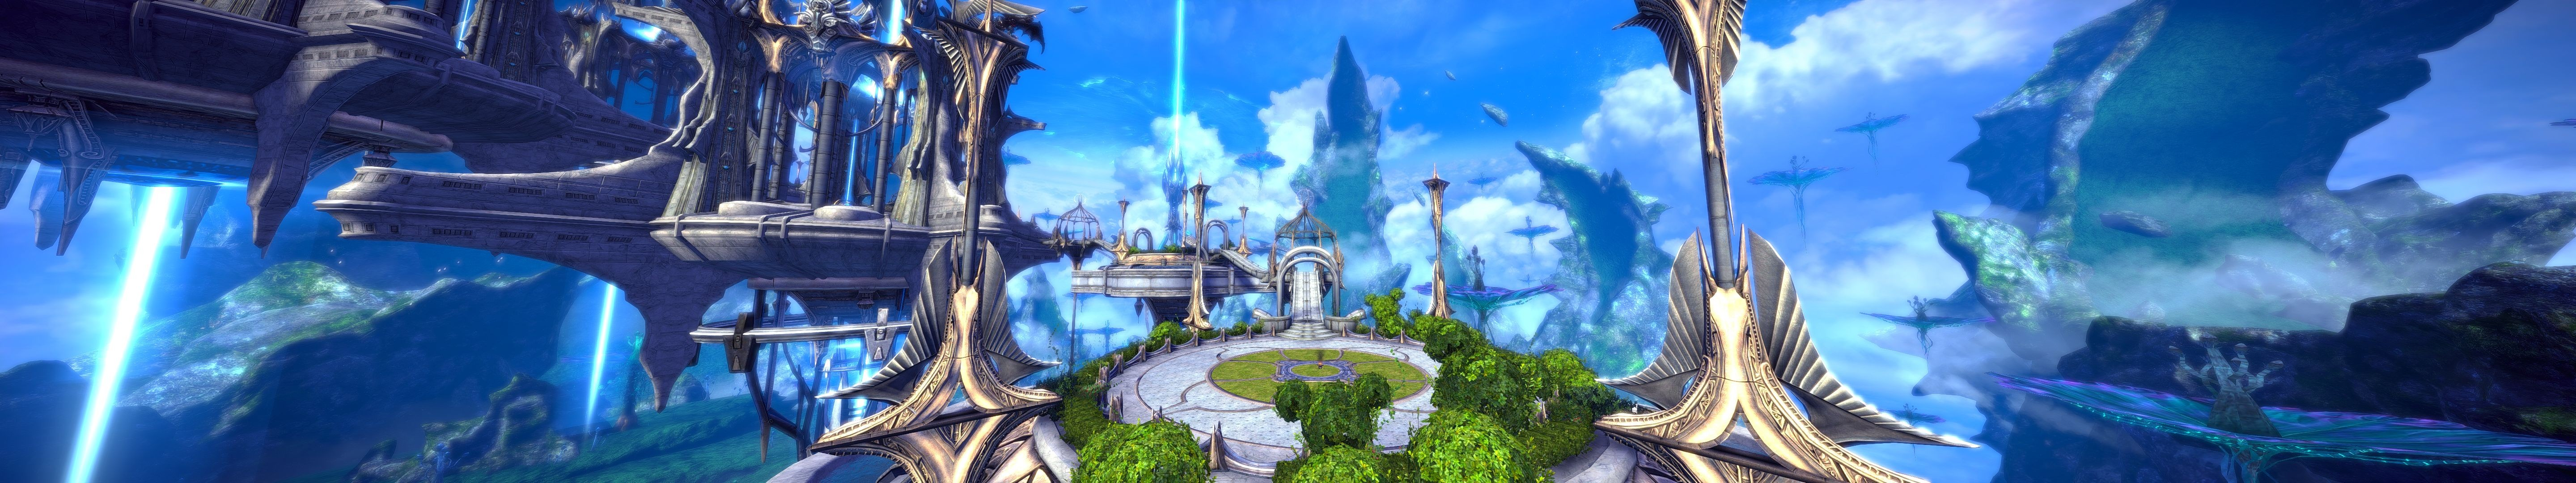 TERA - My first time through Skygarden. Looks like such a nice vacation spot. 3 monitors required to view fullscreen without scrolling left to right.